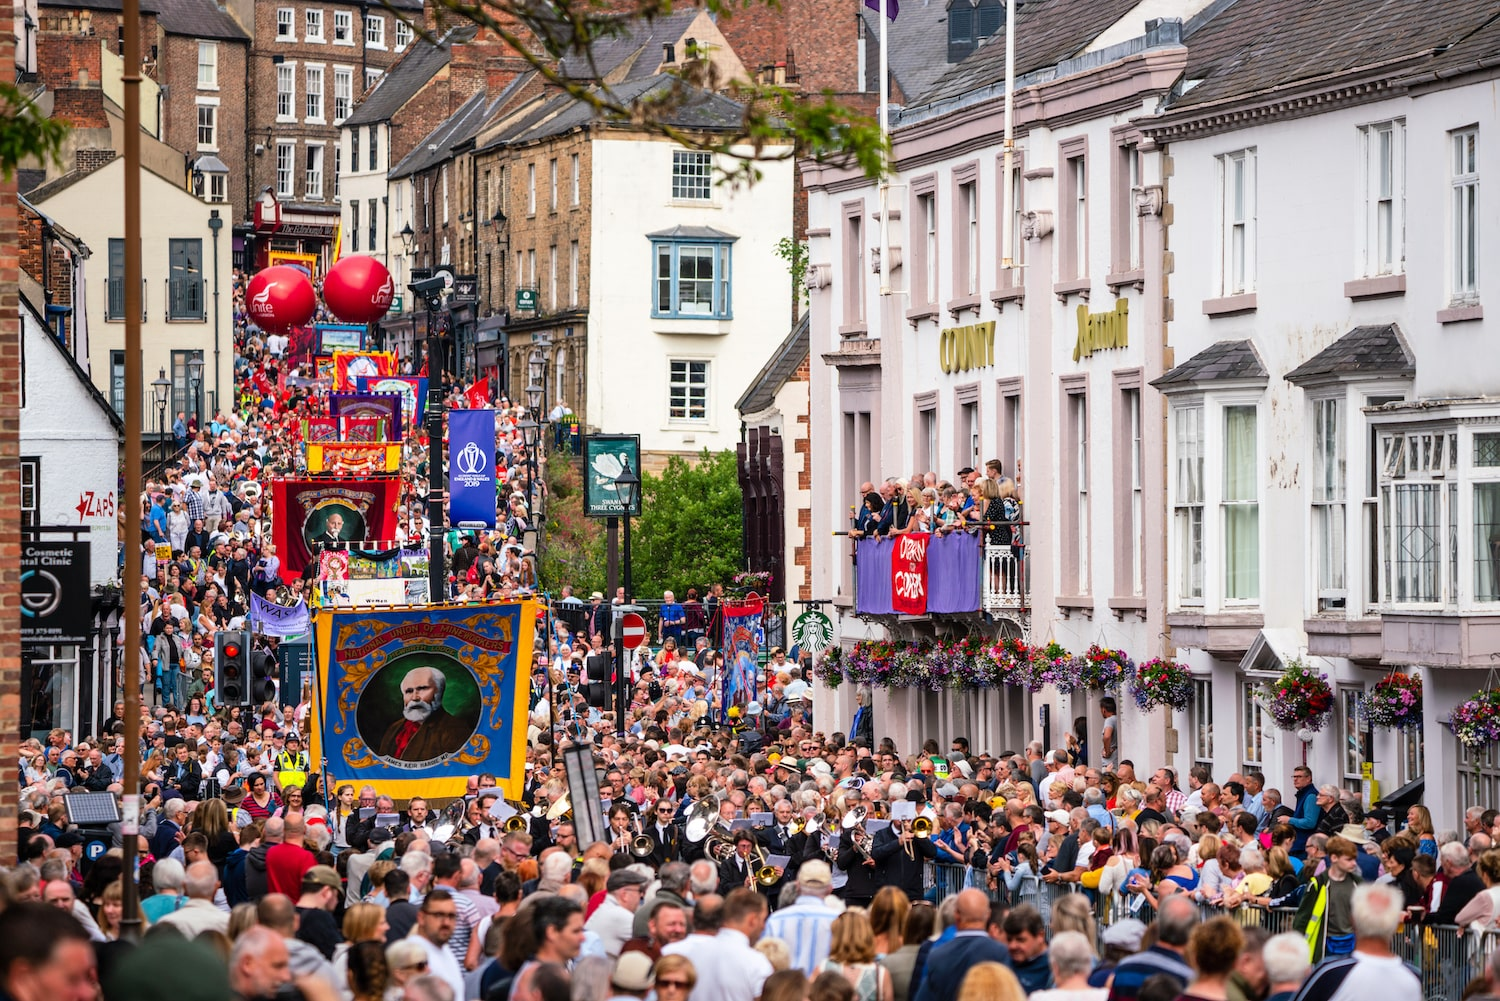 Crowds and banners at Durham Miners Gala